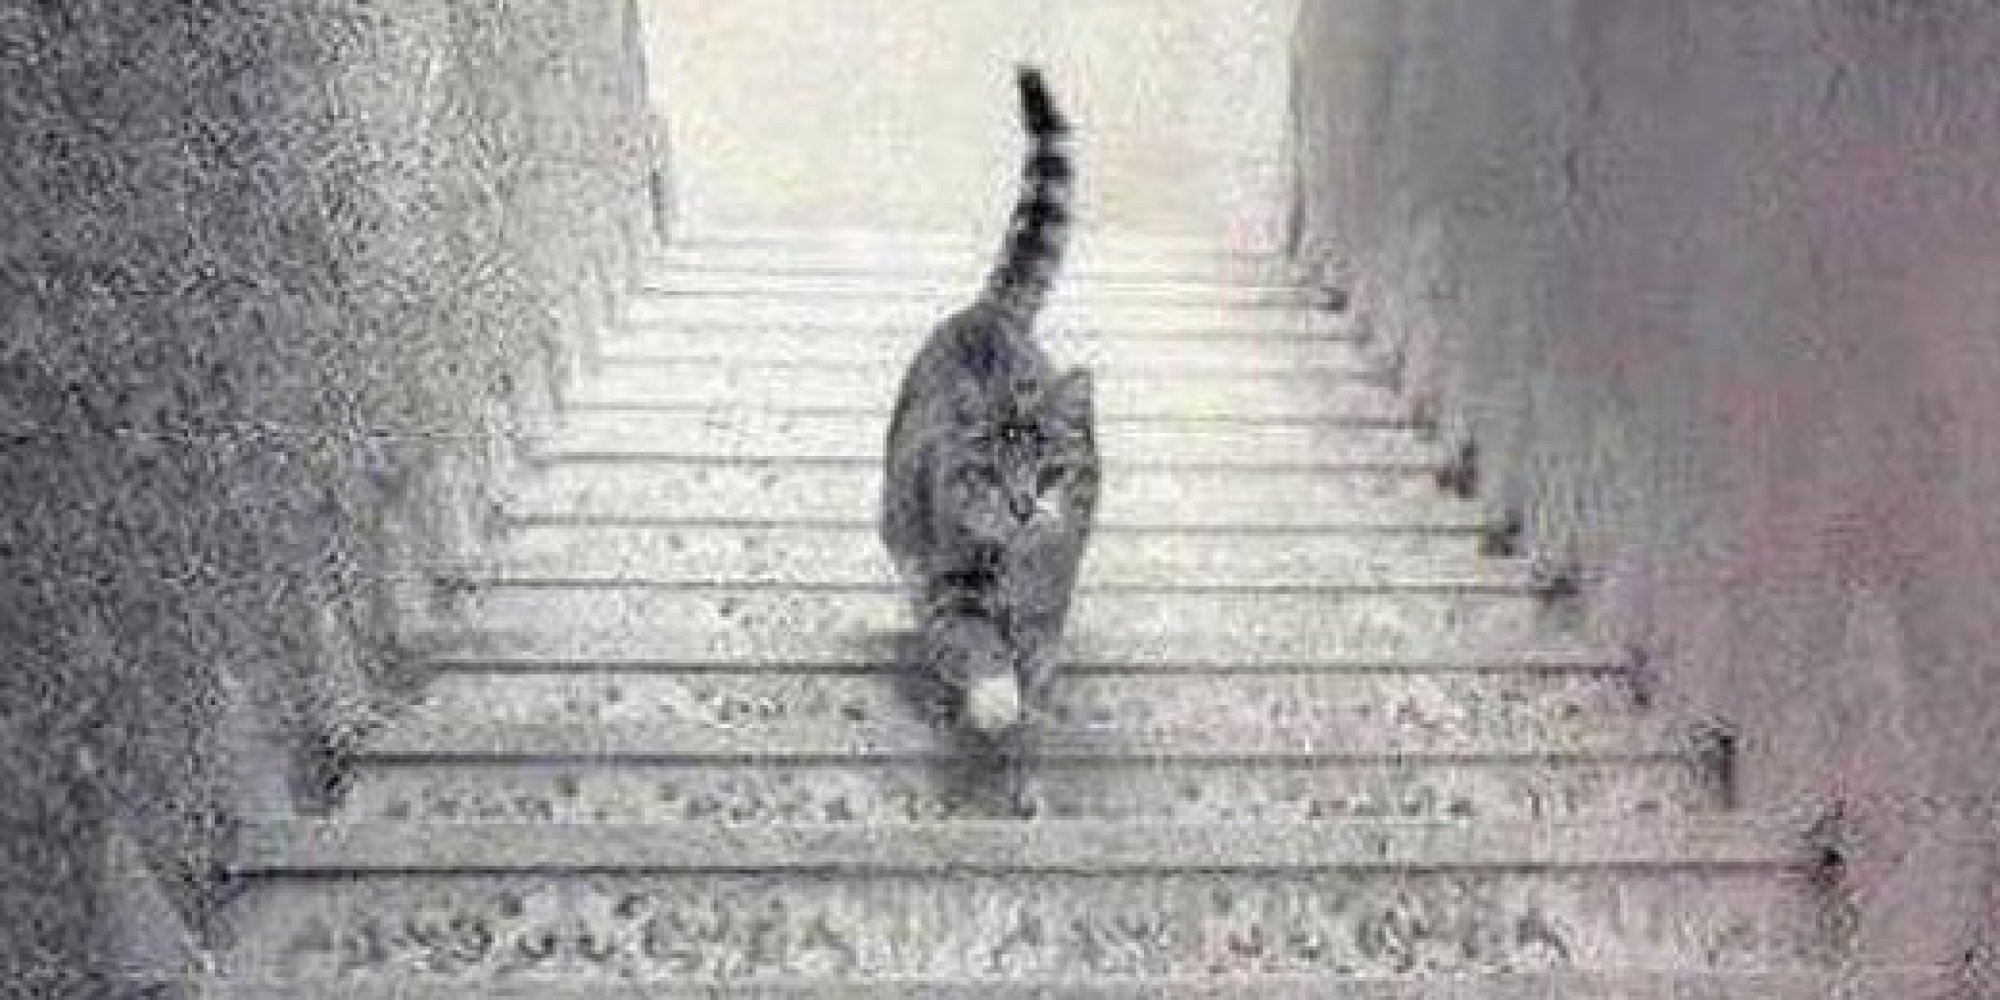 illusion optical cat brain down stairs going illusions mind stair cool staircase steps trick ilusion another perception left right go